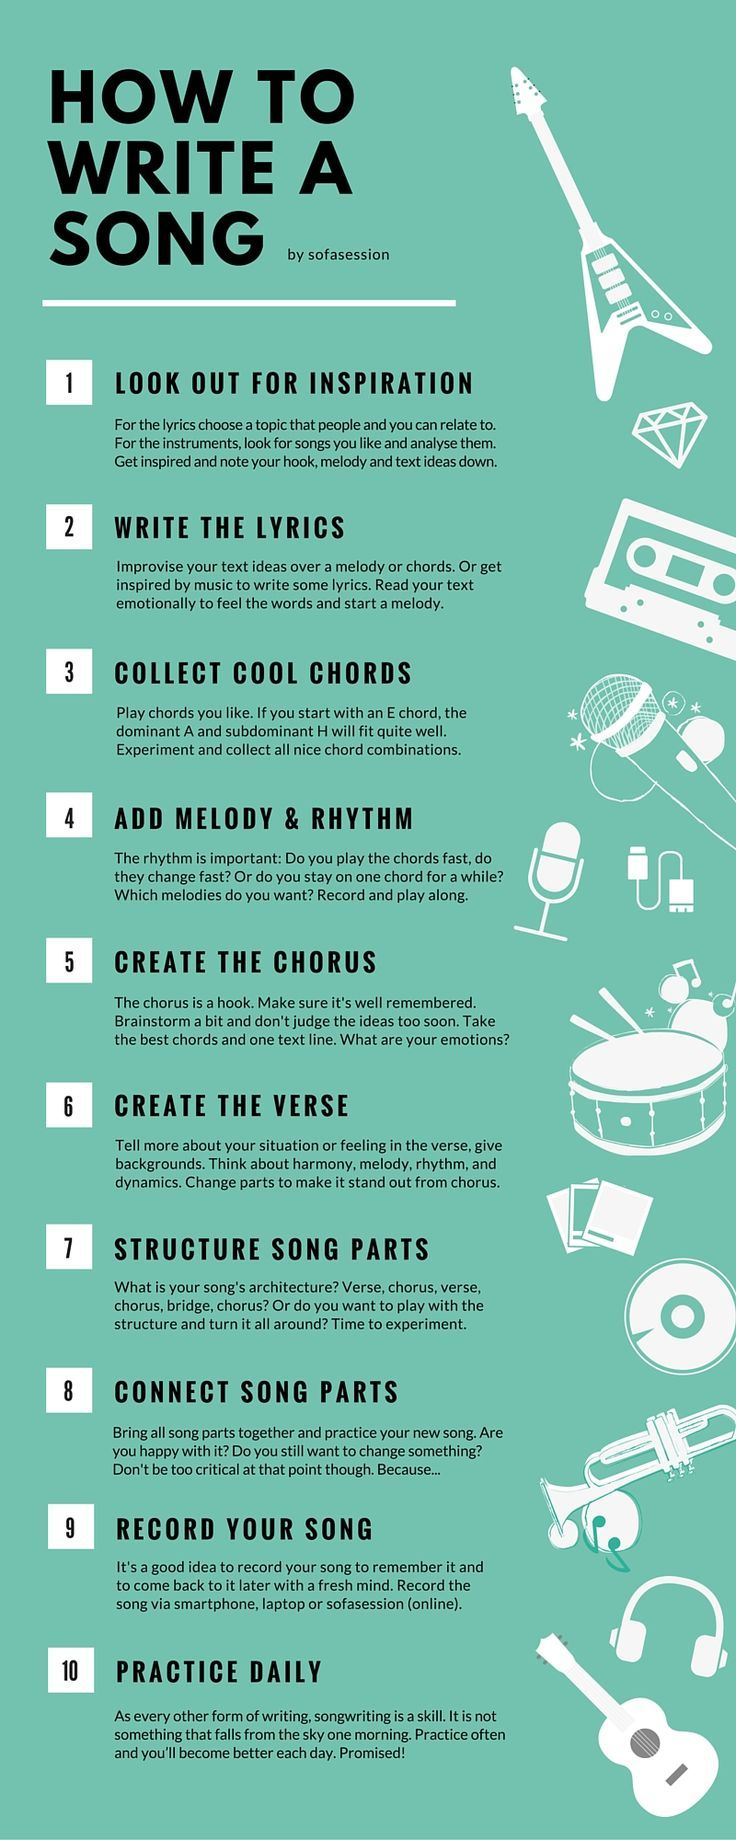 How to write a song in 13 steps as a beginner? The infographic